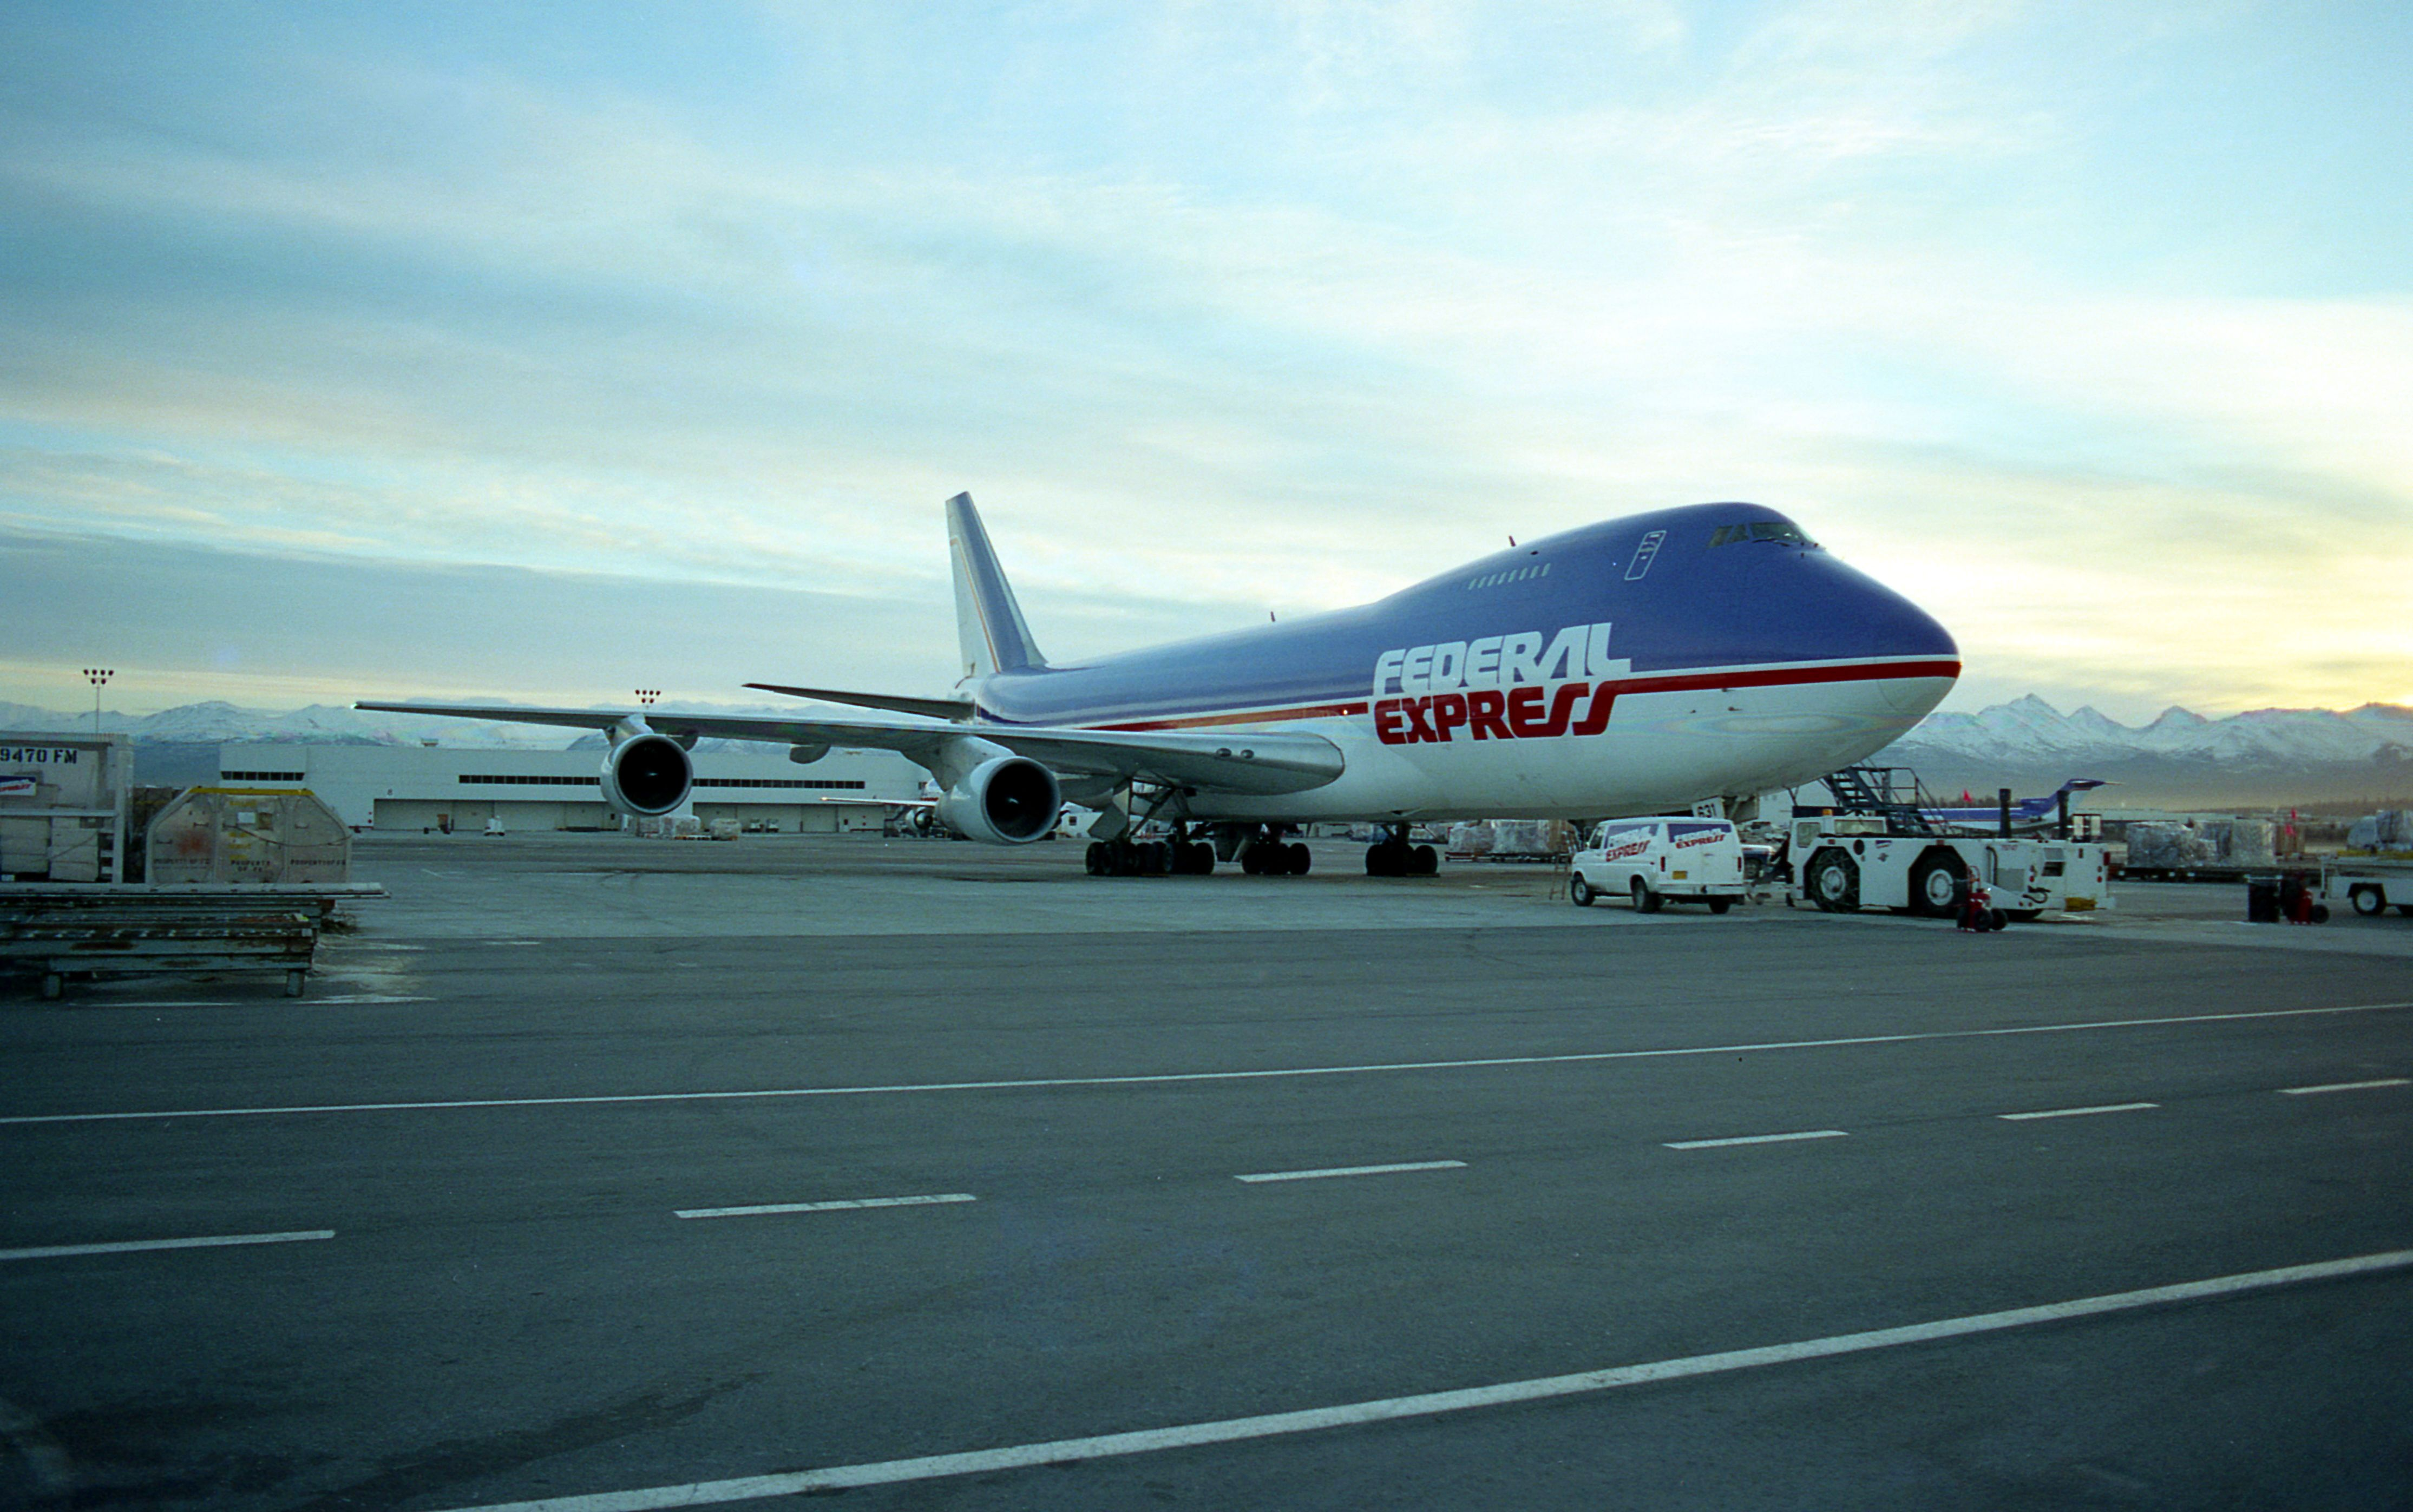 Throwback to the early 1990s, a Boeing 747 on the ramp at